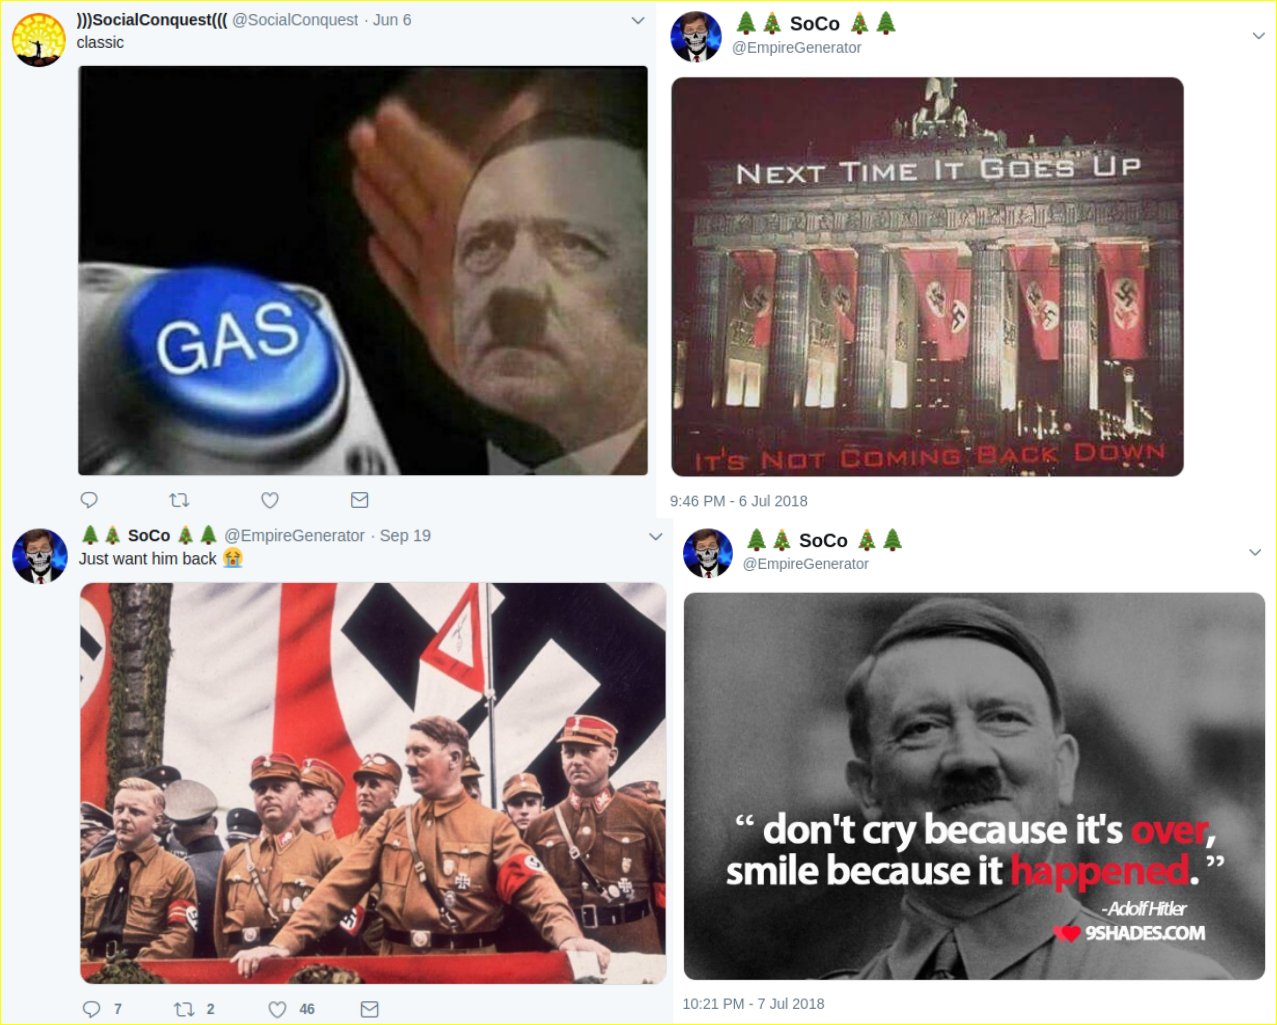 Matt Blais idolizes Hitler and expresses his hope and intention of recreating Nazi Germany in the present day